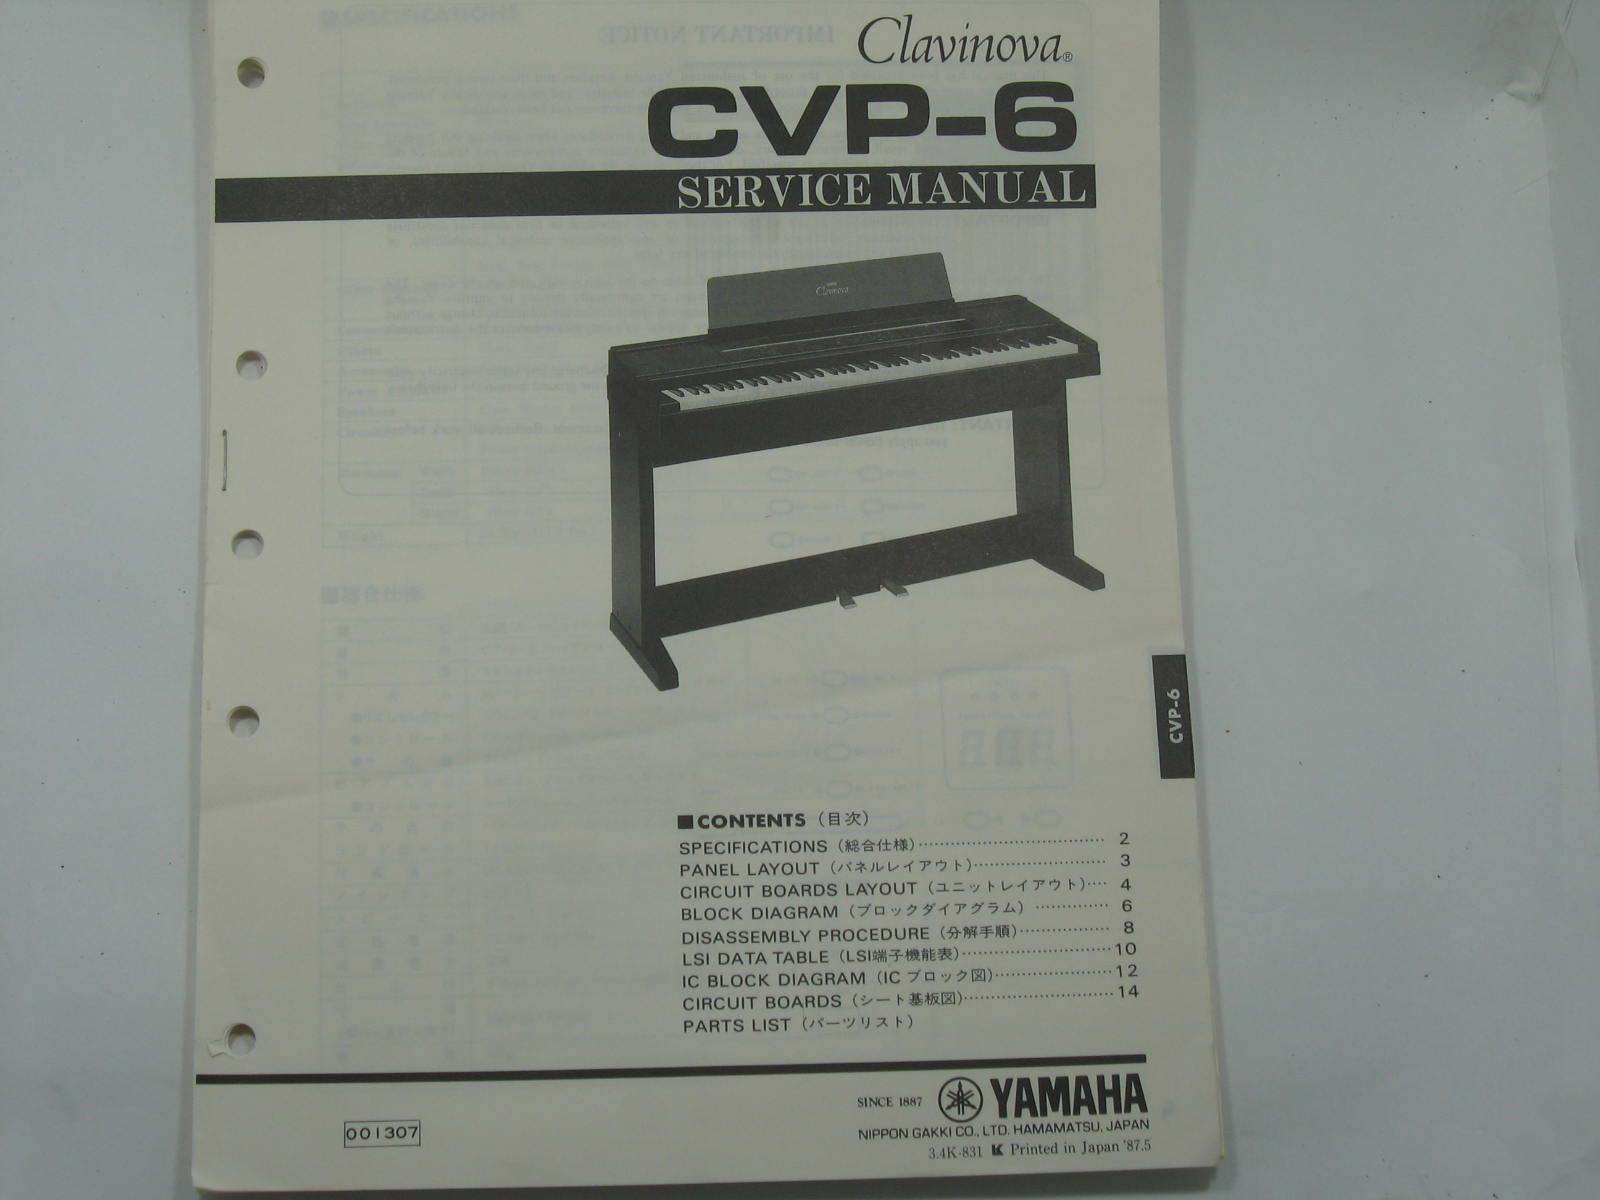 Cvp 6 Clavinova Service Manual Keyboard Sustain Pedal Wiring Diagram